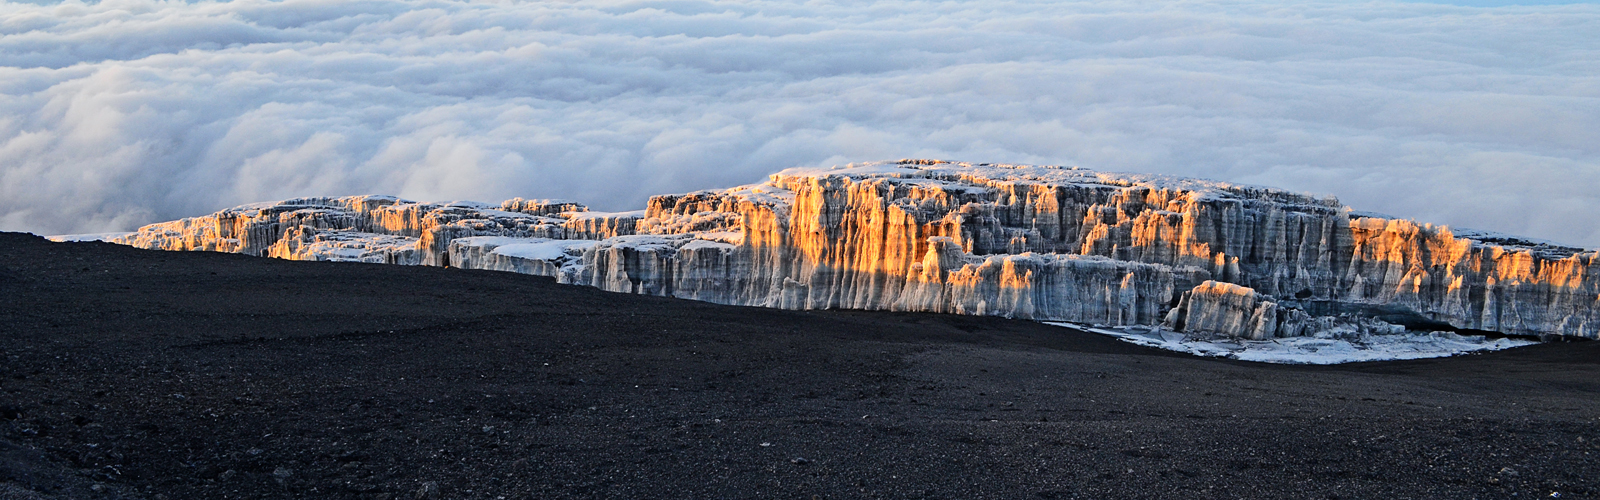 Sunrise on Icefields of Kilimanjaro